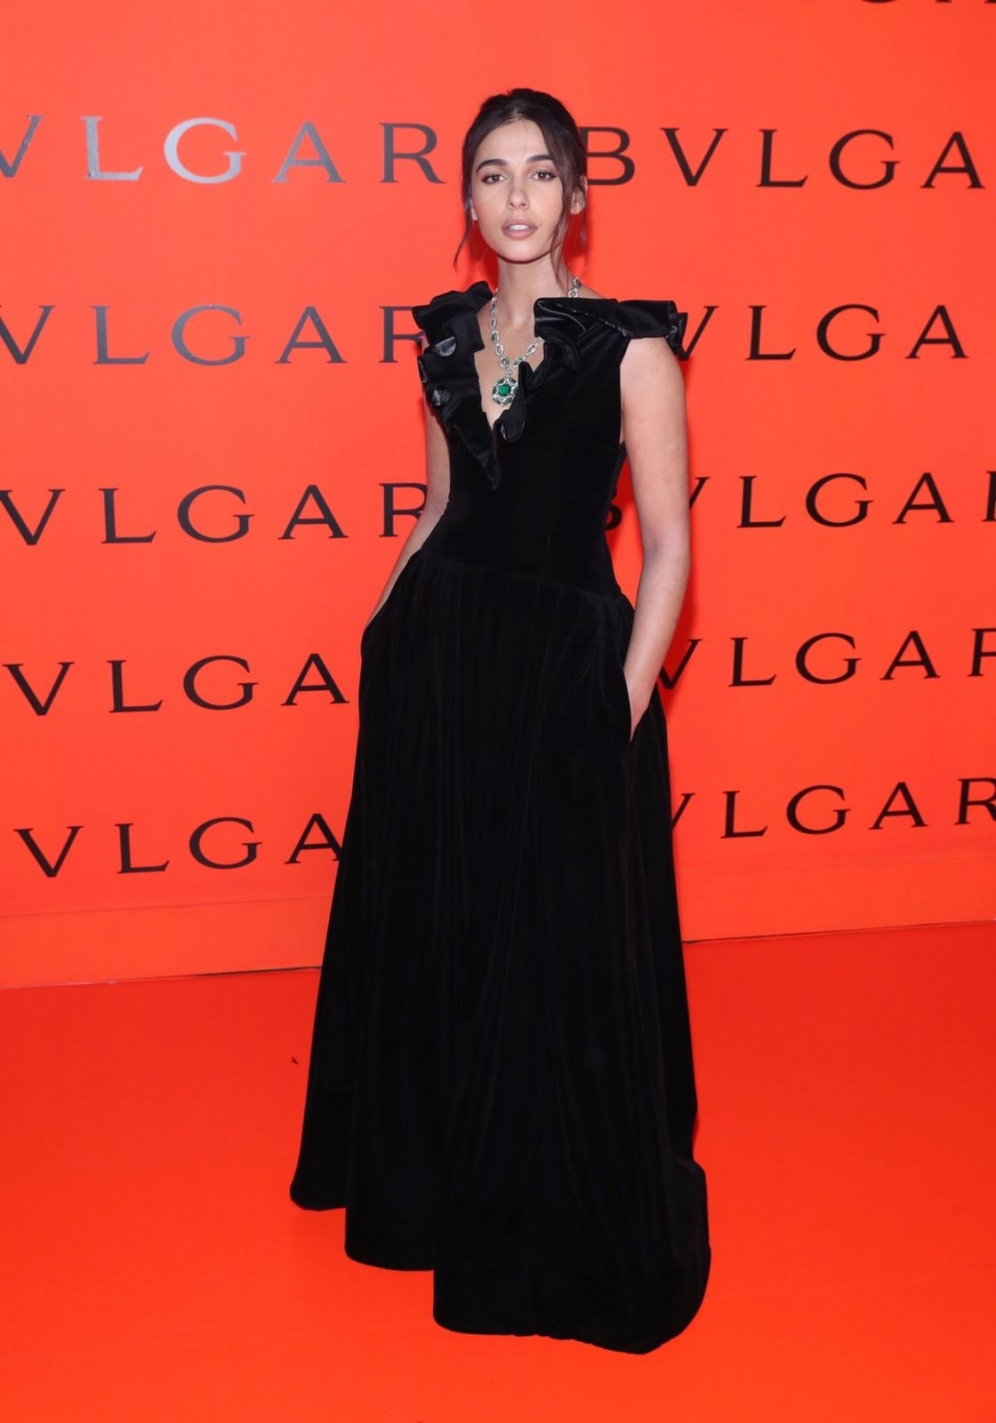 Naomi Scott | Bvlgari Rock Collection Launch Event in NYC